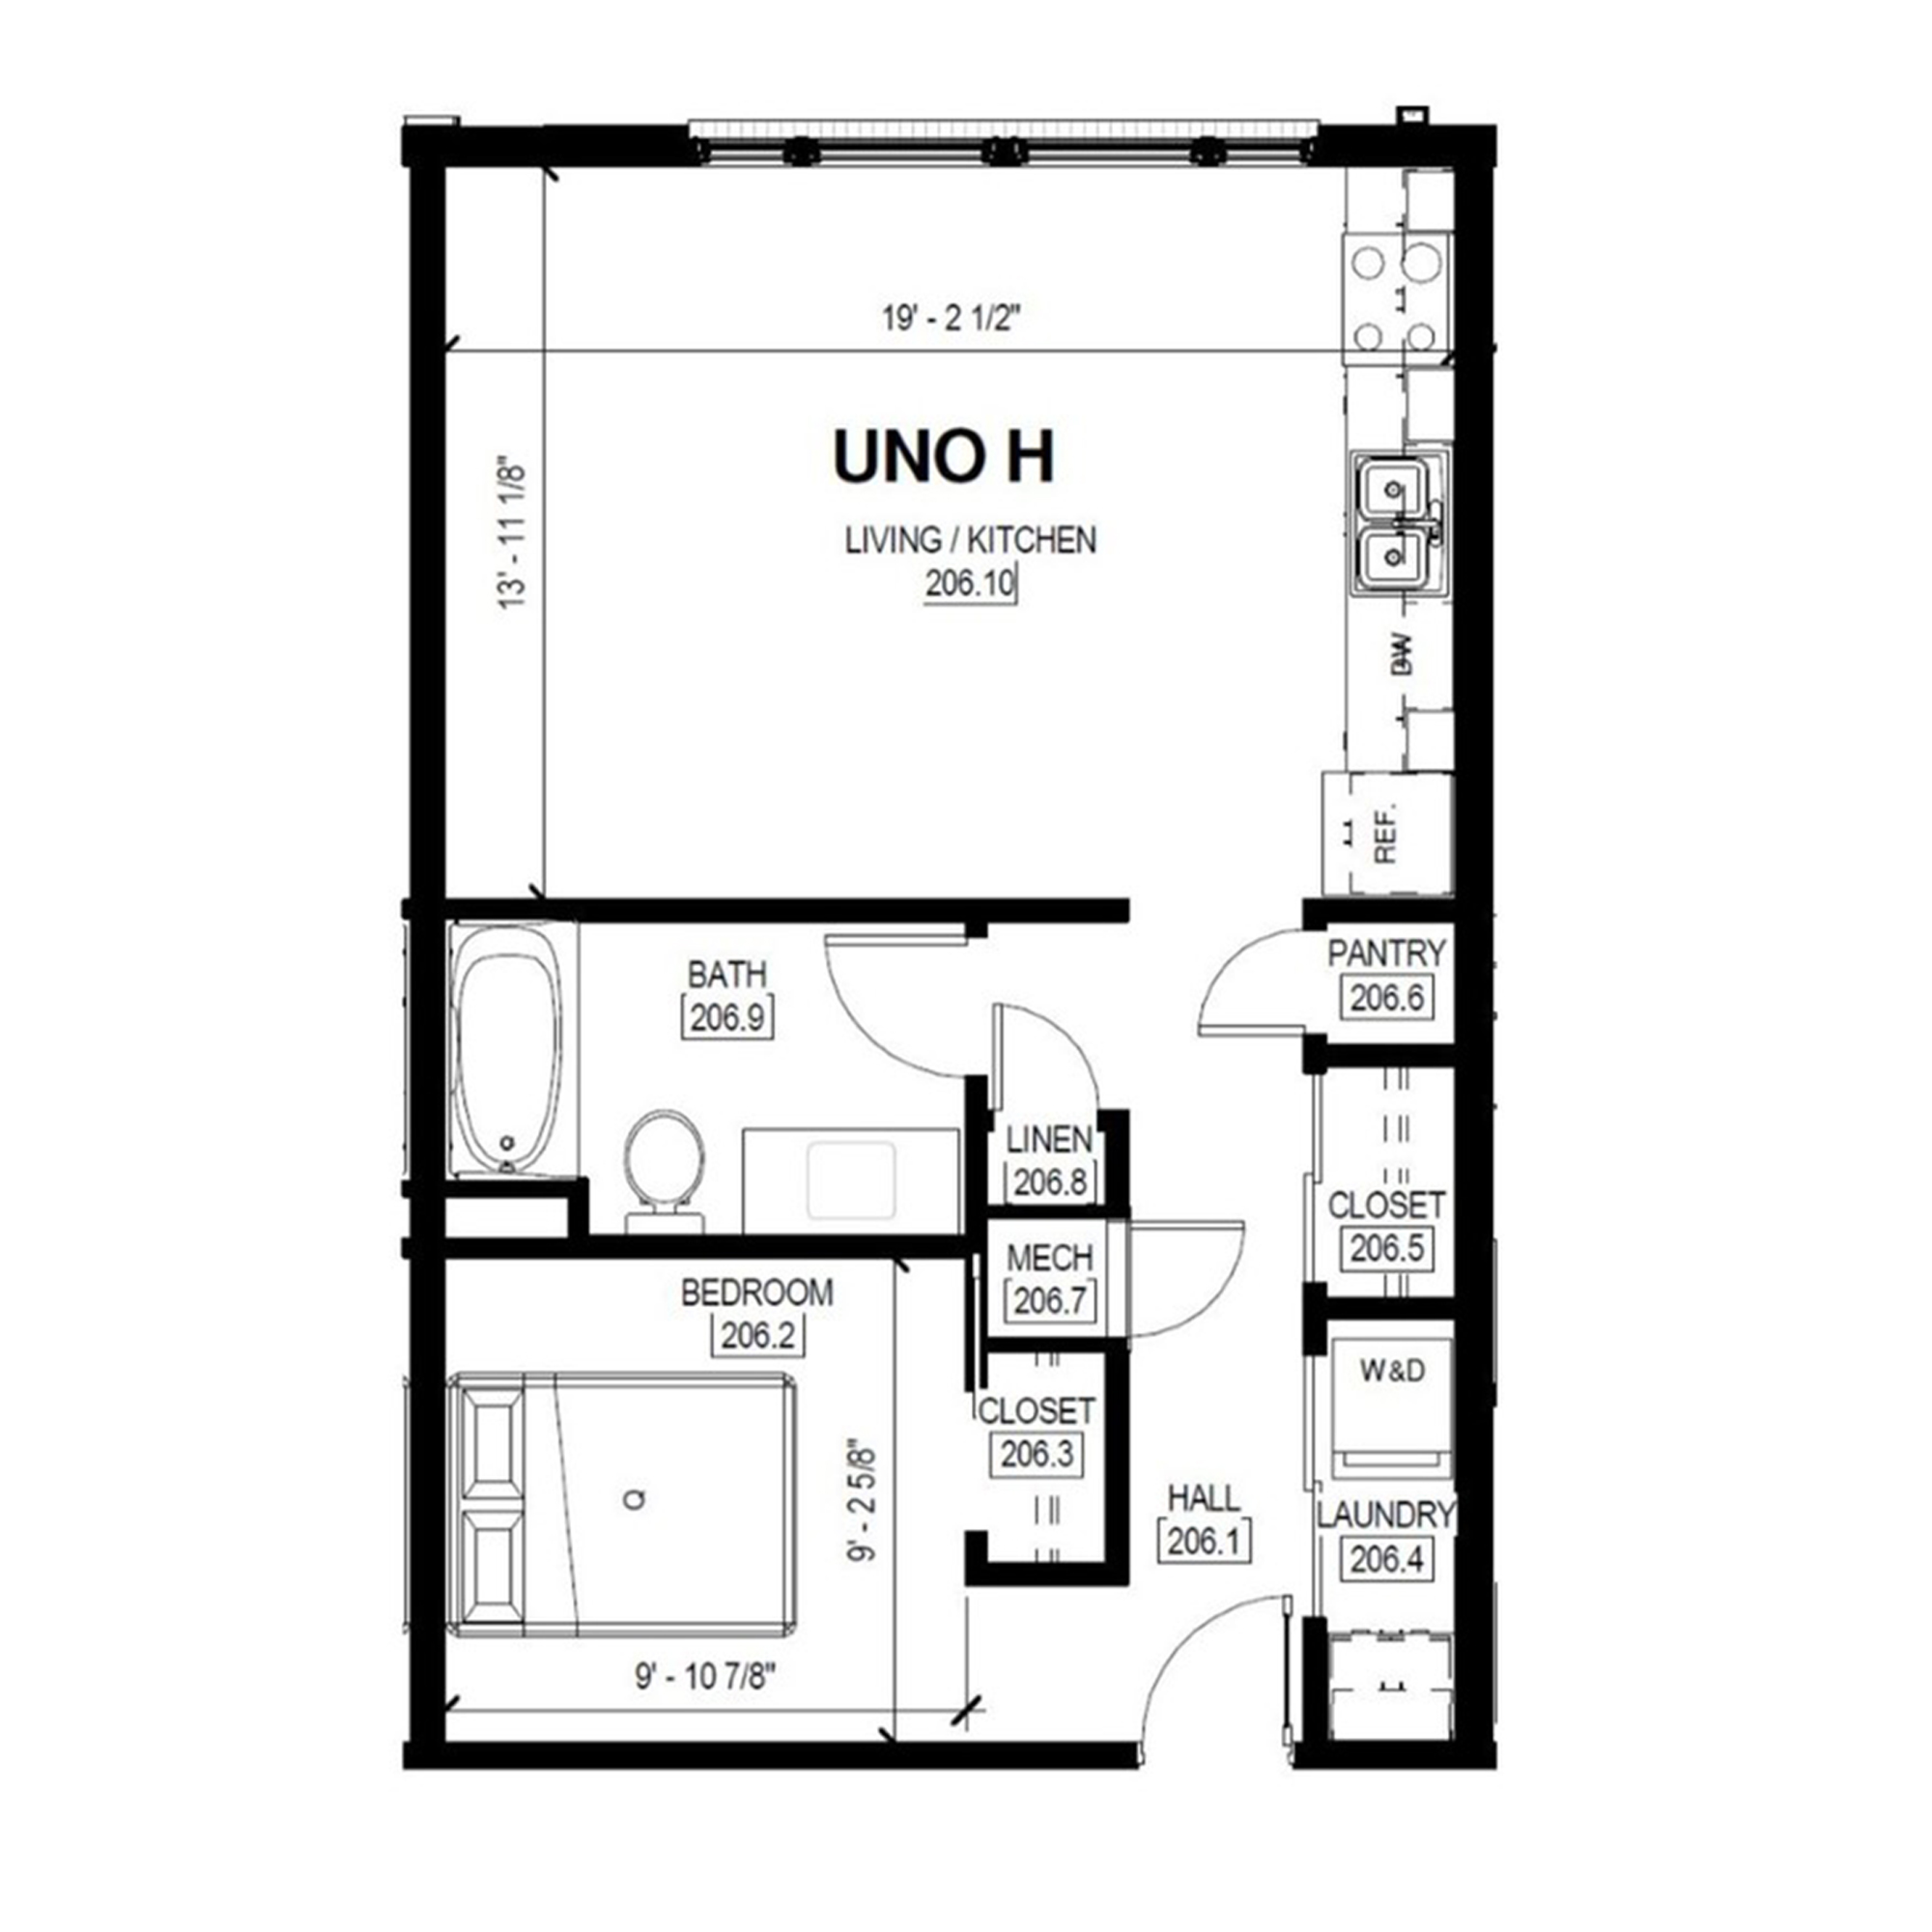 Uno H   1 Bed, 1 Bath